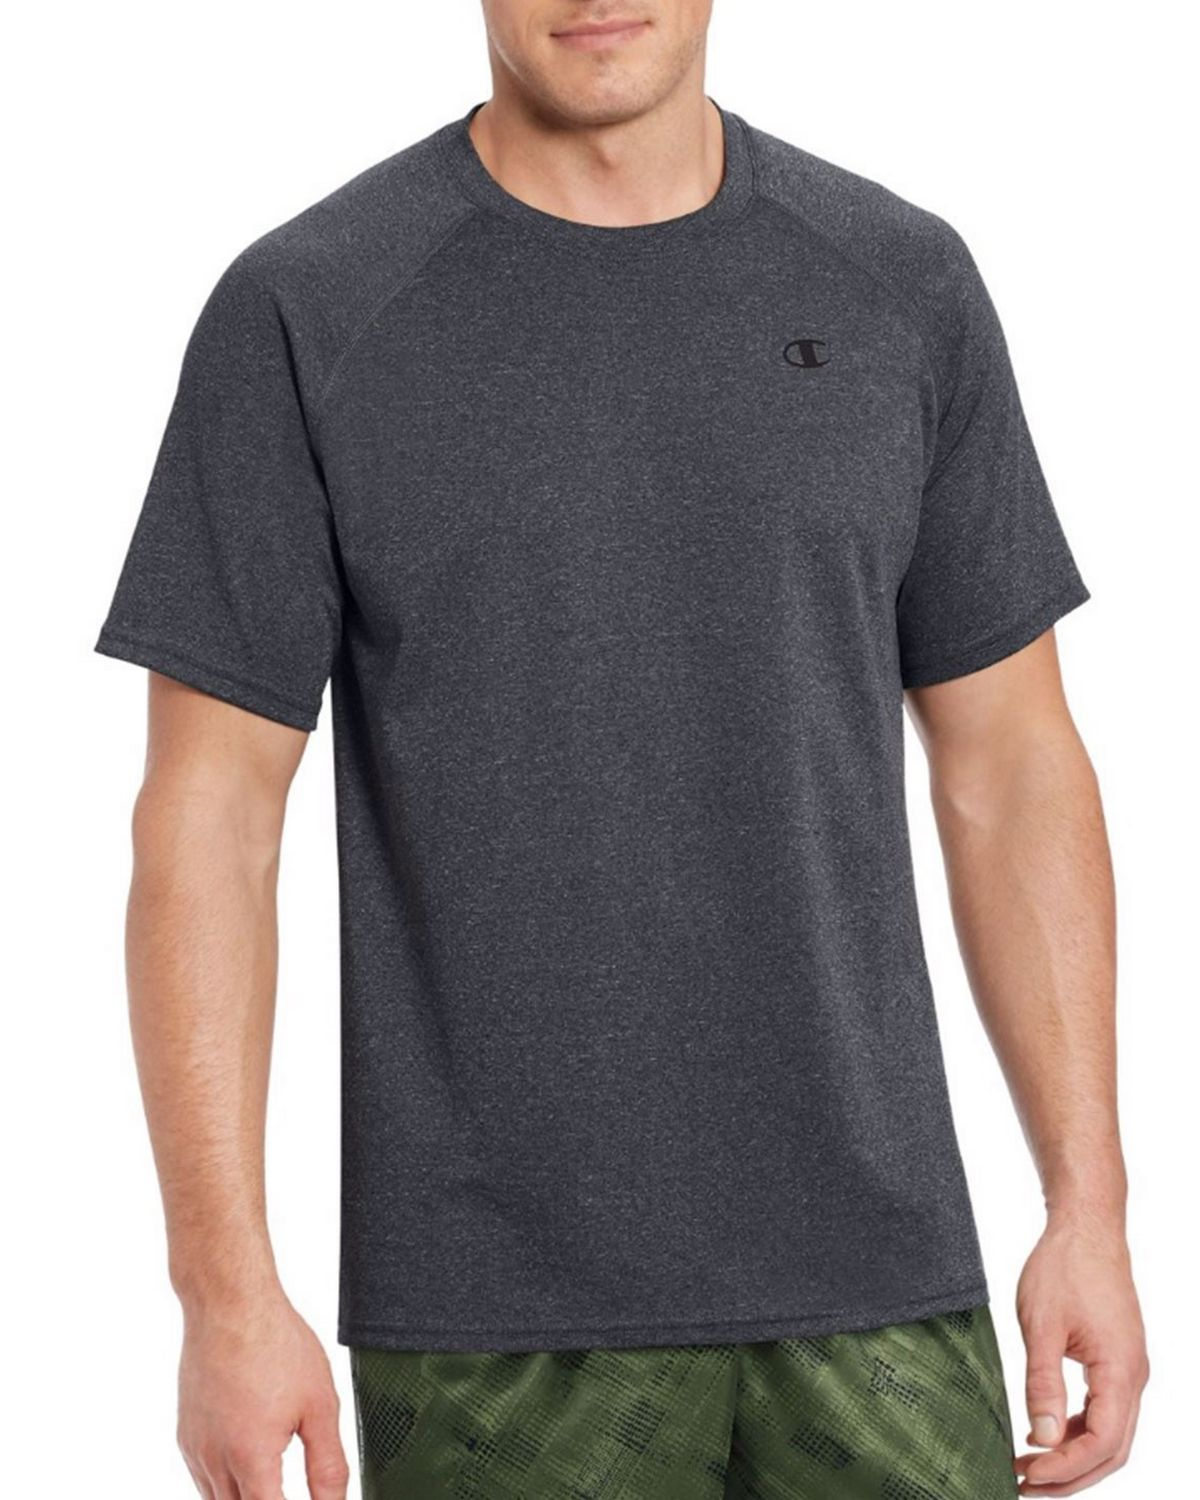 Champion T0881 Vapor Mens Tee - Granite Heather - L T0881